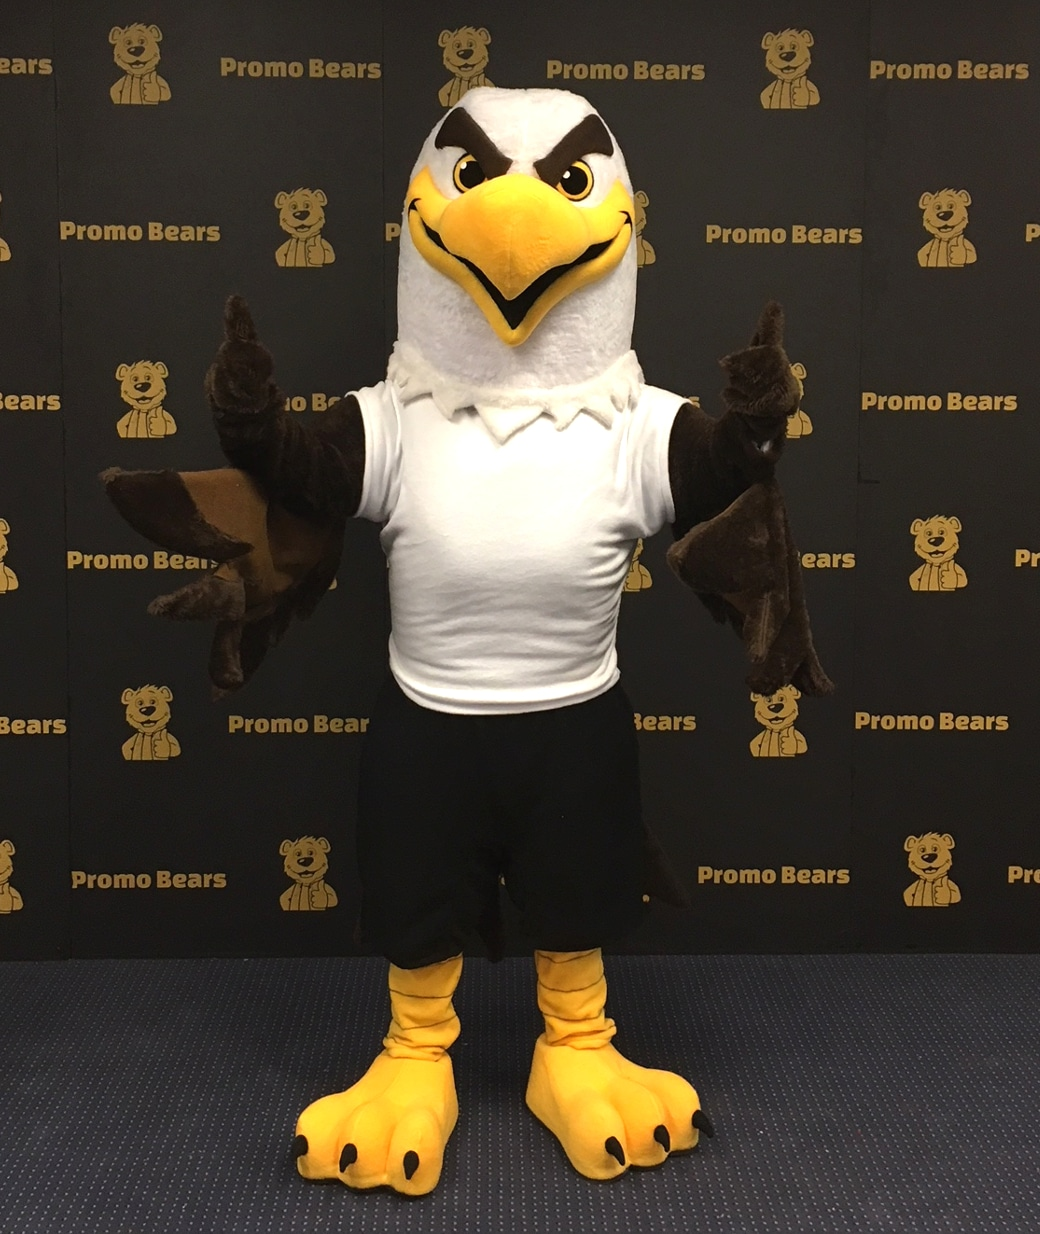 Eagle Mascot with custom clothing set with logo and branding